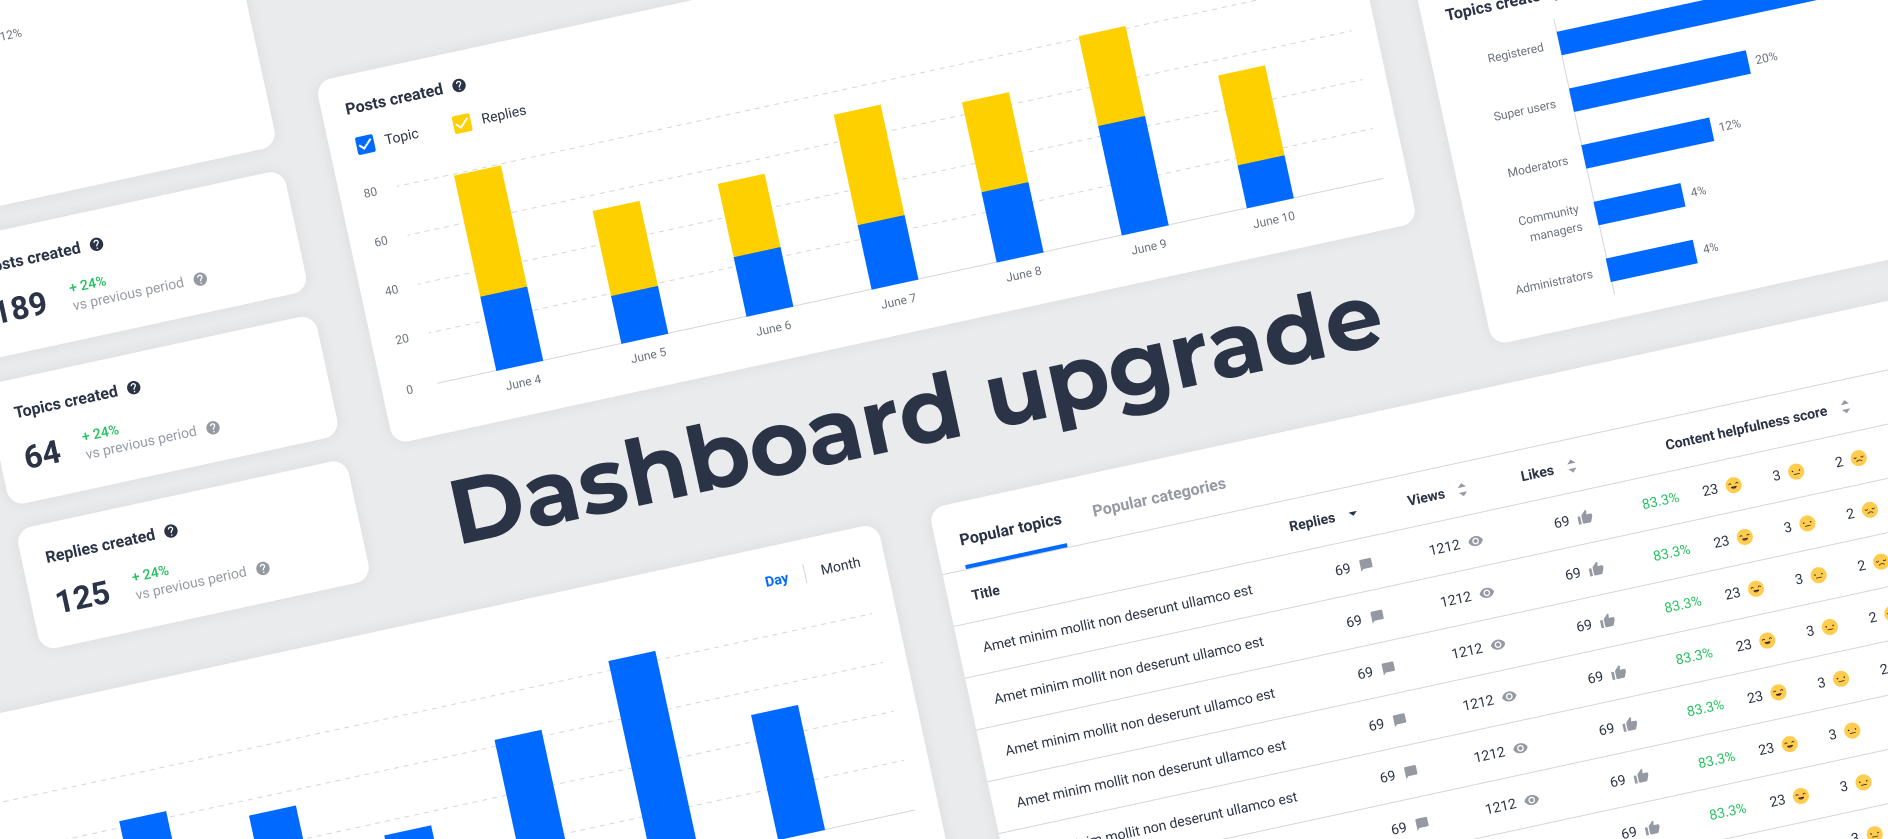 Reminder: old dashboards will be removed on Wed 23 September 2020